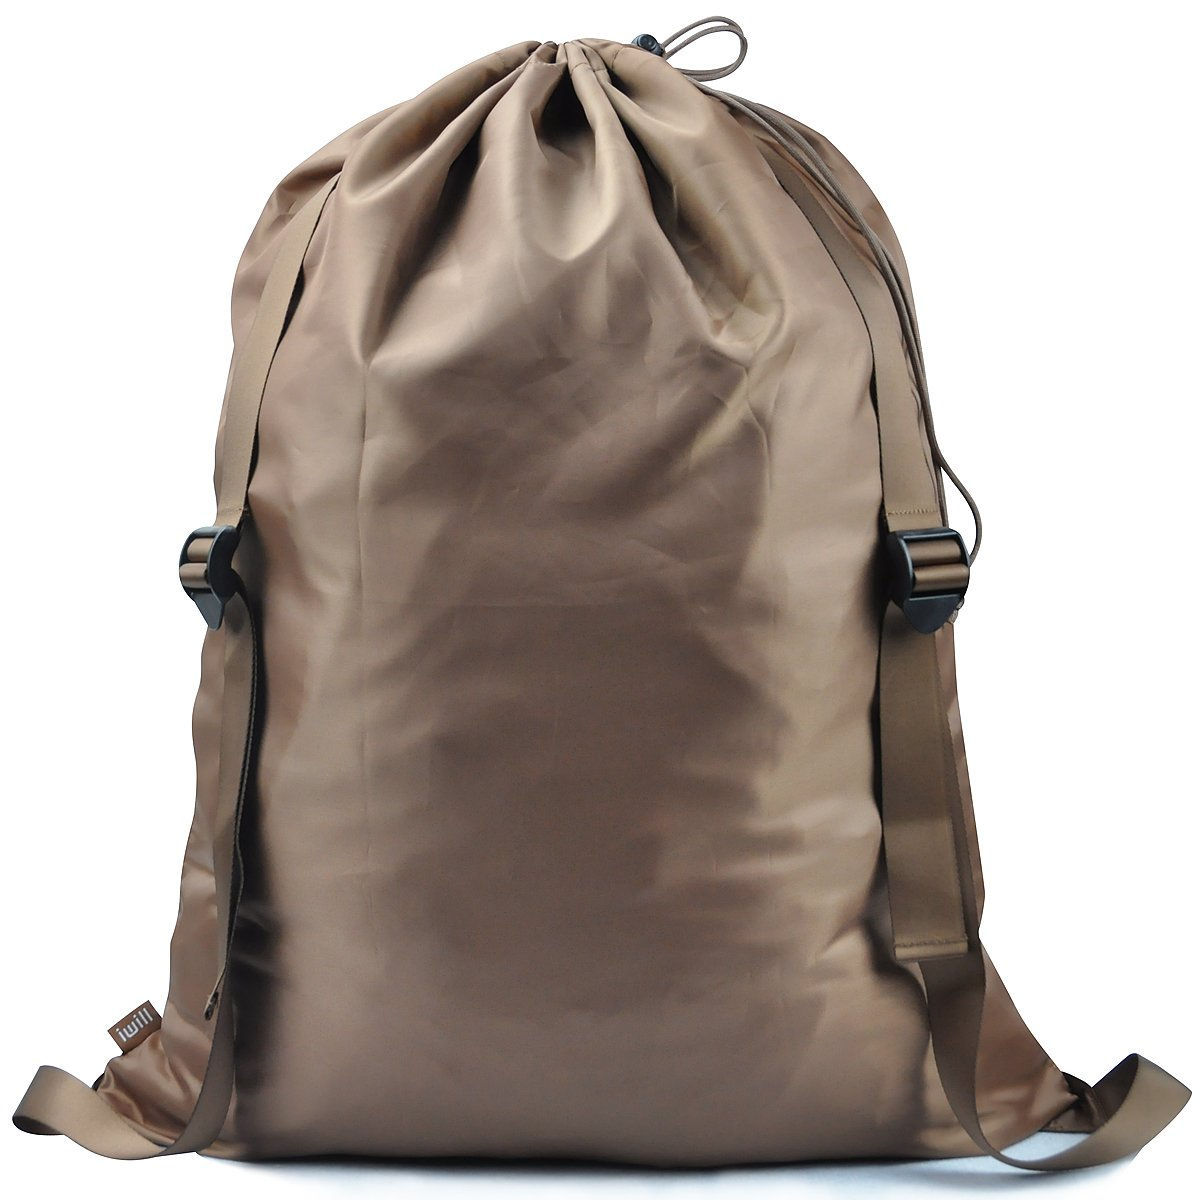 """iwill CREATE PRO 『25""""X31""""』 Laundry Backpack, 2 Strong Shoulder Straps, Wash Laundry Washing Bag for Dorm-Room, Laundry Bag, Brown"""